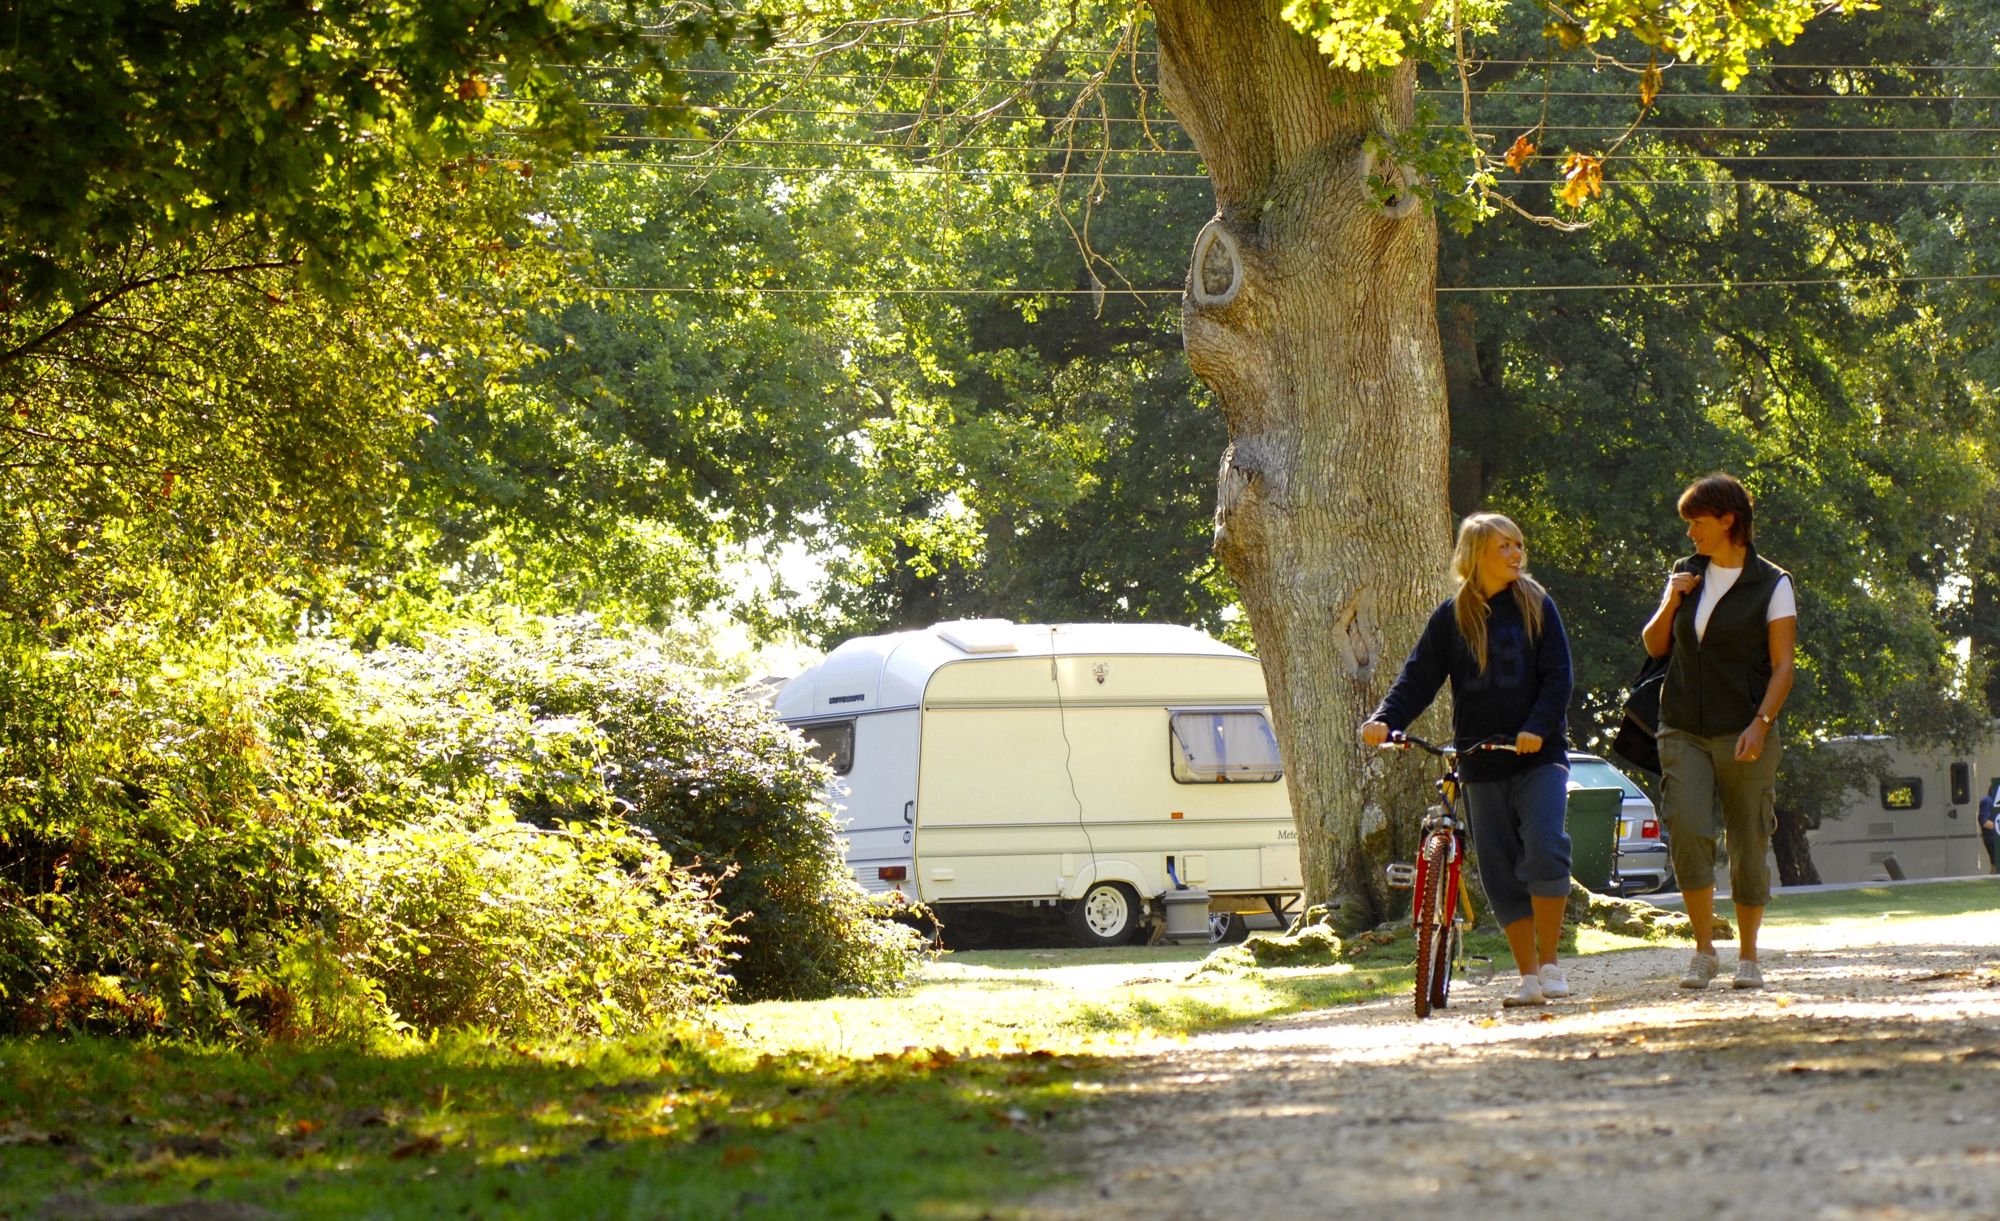 Caravan holidays in the UK – Independent campsites that accept caravans